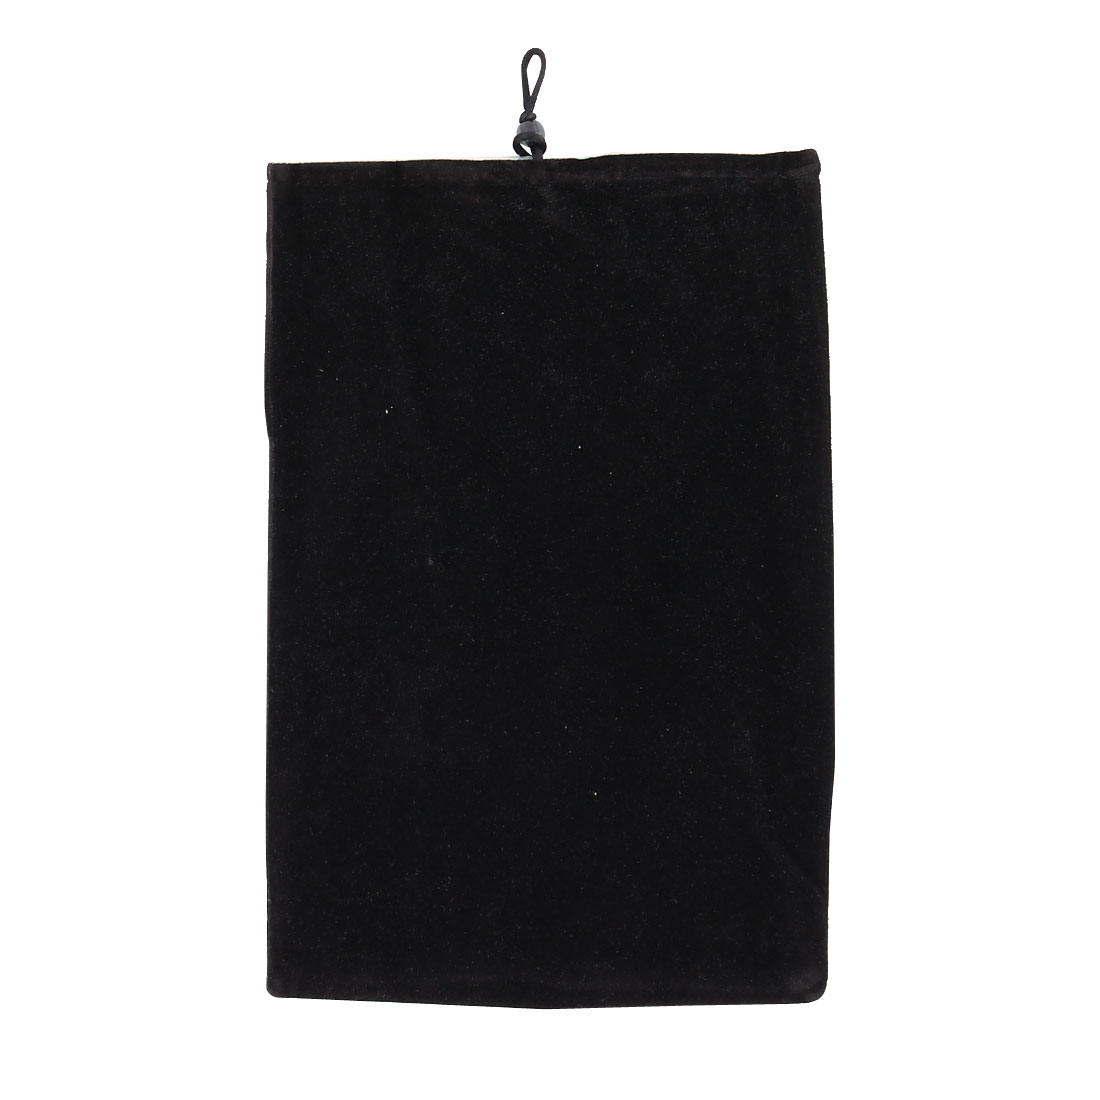 "9.7"" 10"" 10.1"" Android Tablet Velvet Pouch Bag Sleeve Case Holder Black"